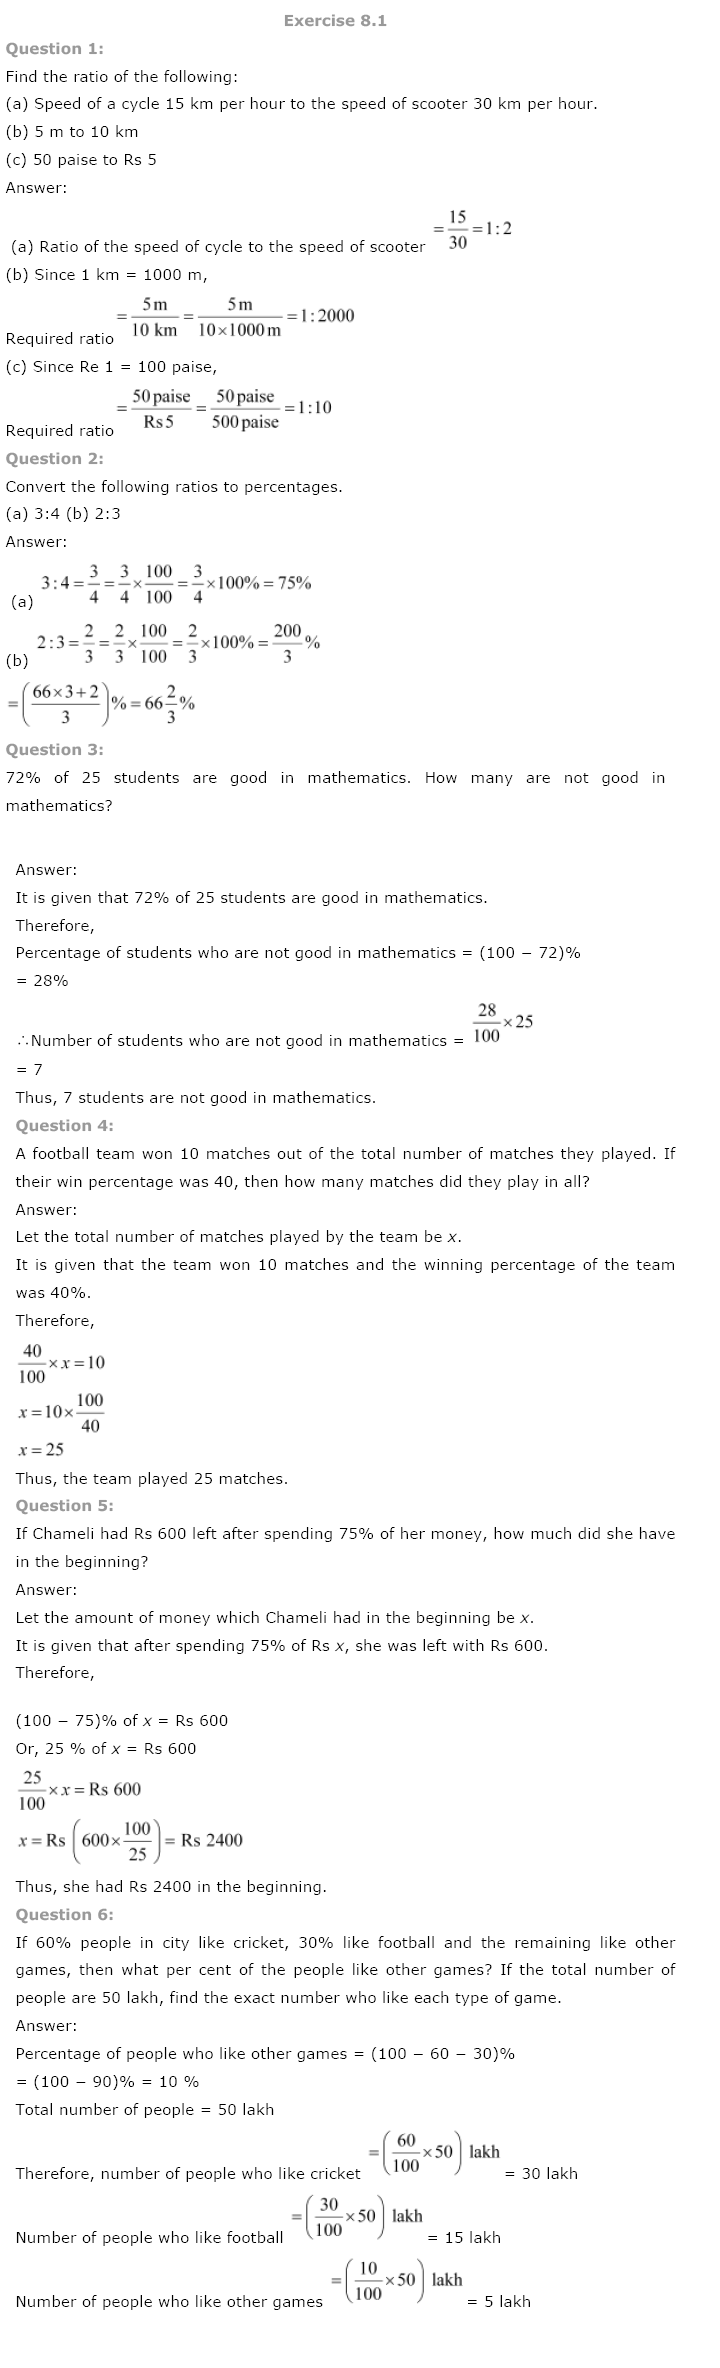 NCERT Solutions For Class 8th Maths Ch 8 Comparing Quantities PDF Download Free 2018-19